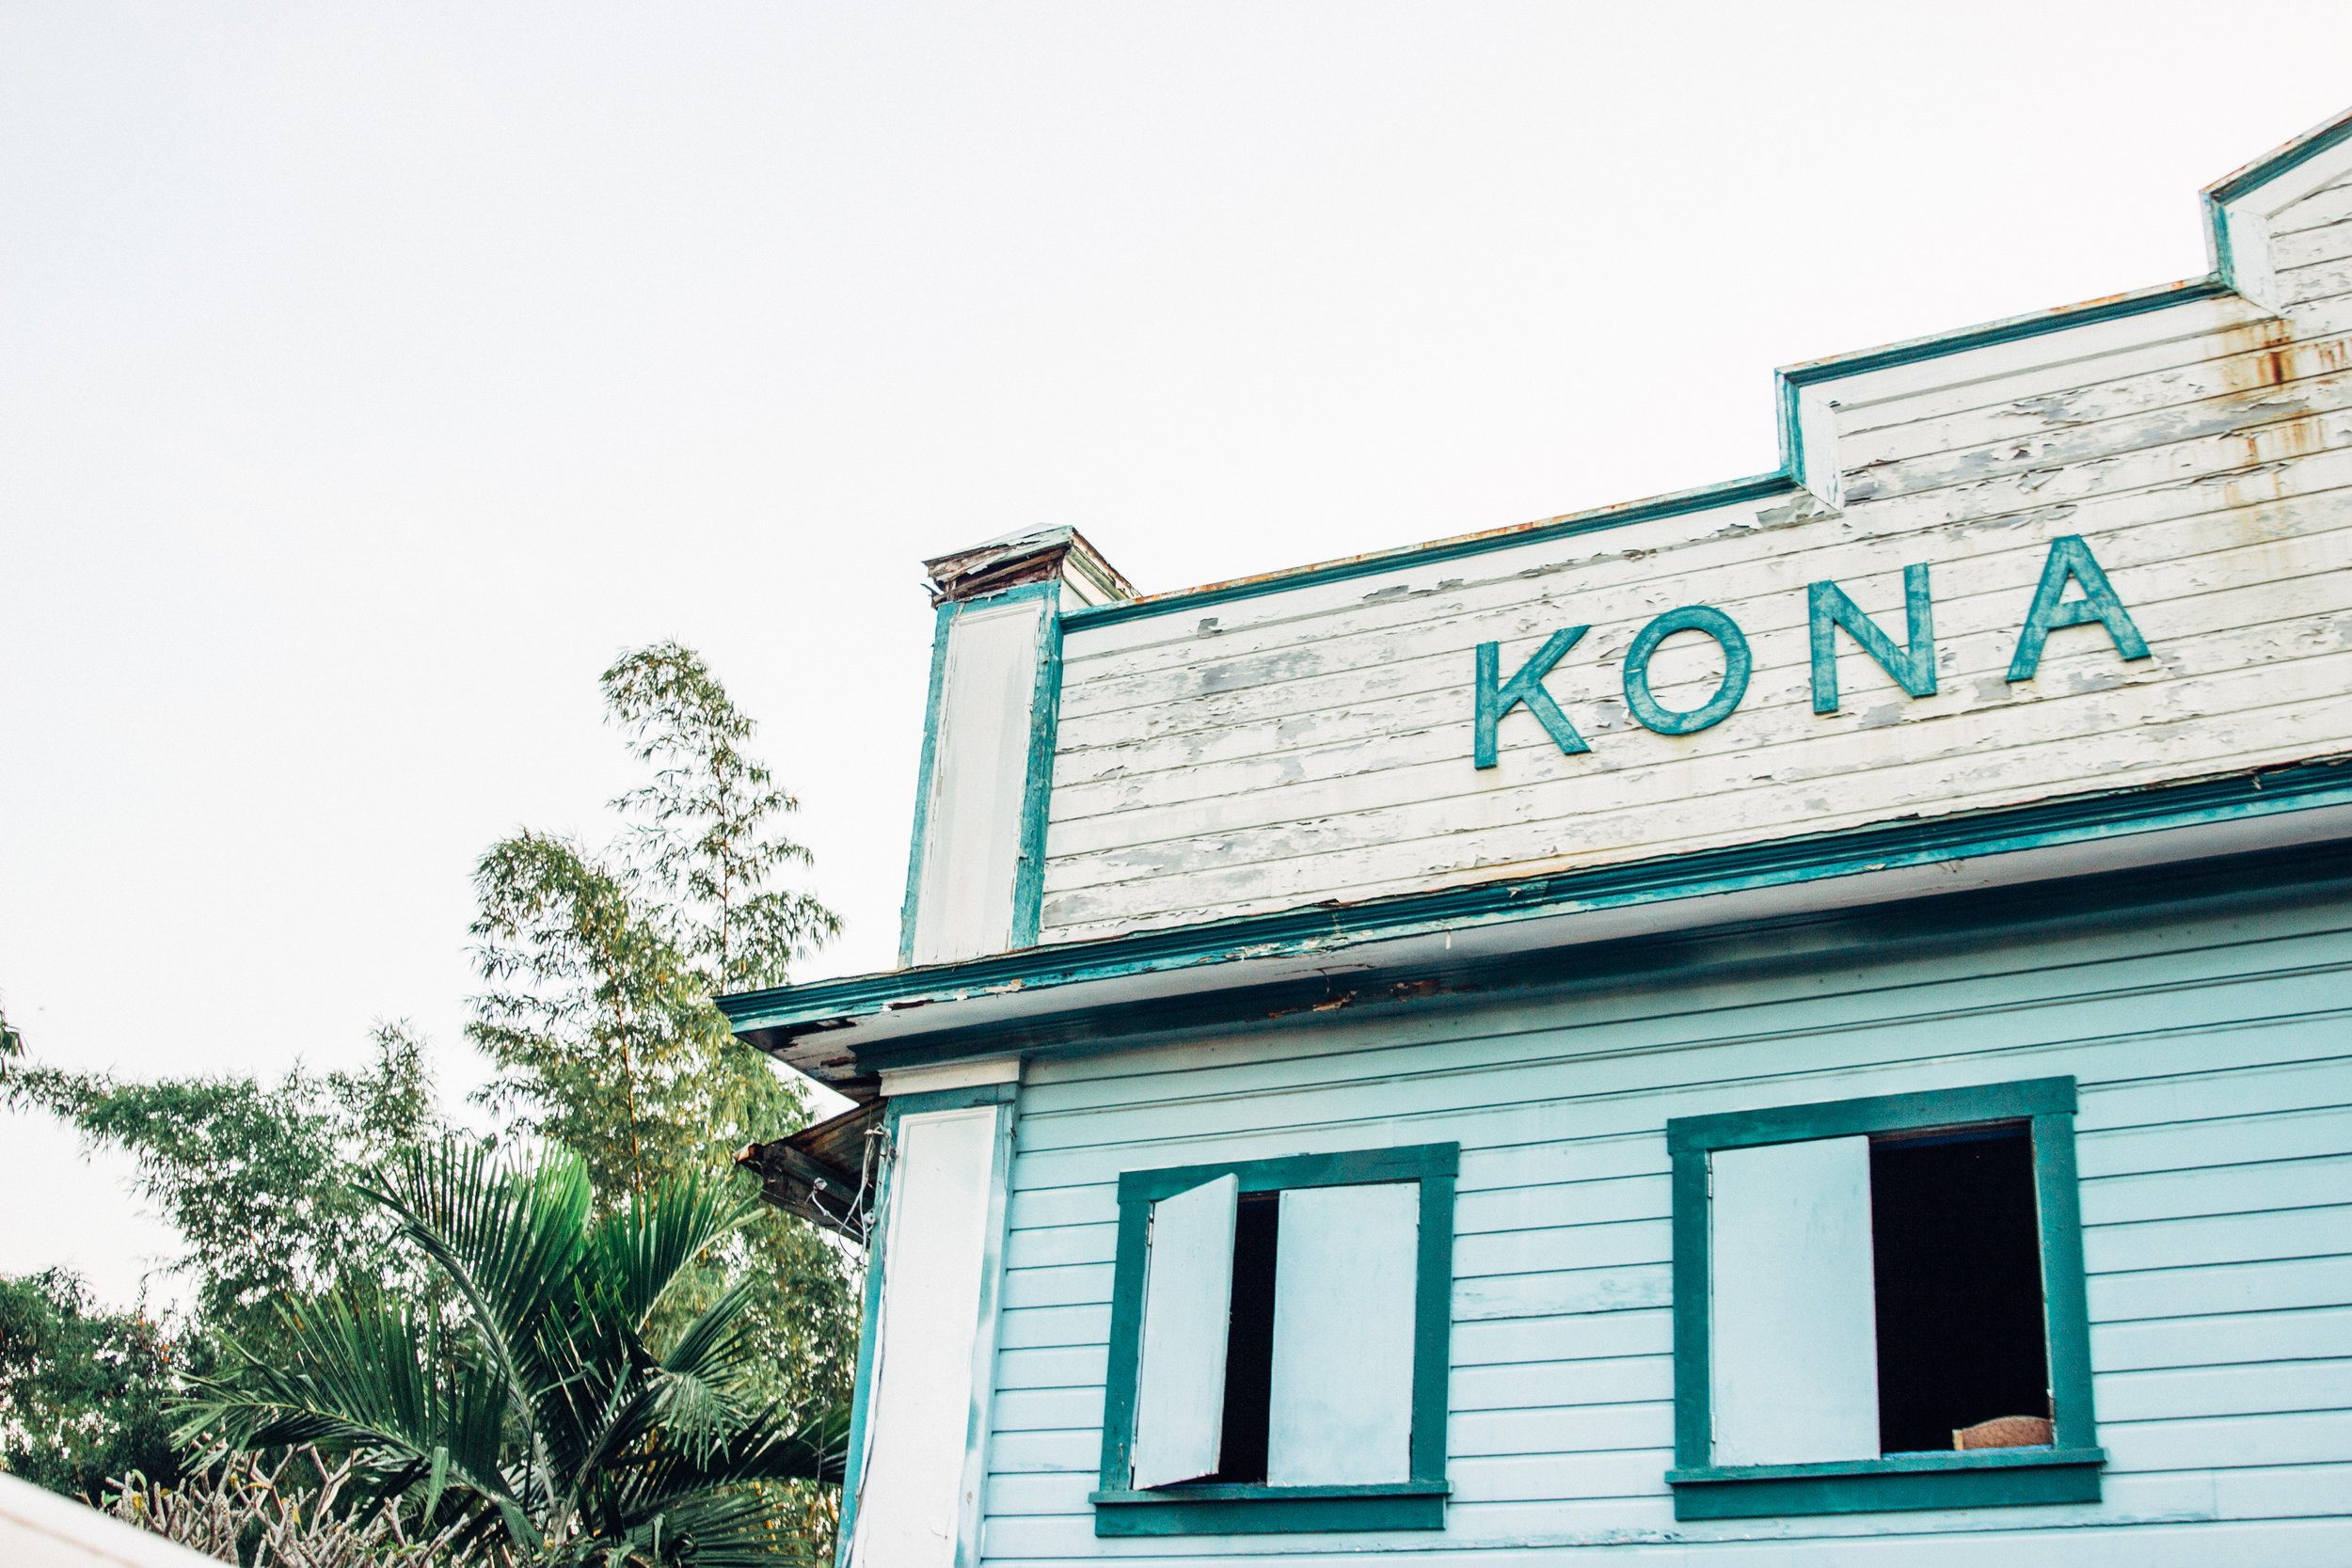 Kona Building Sign